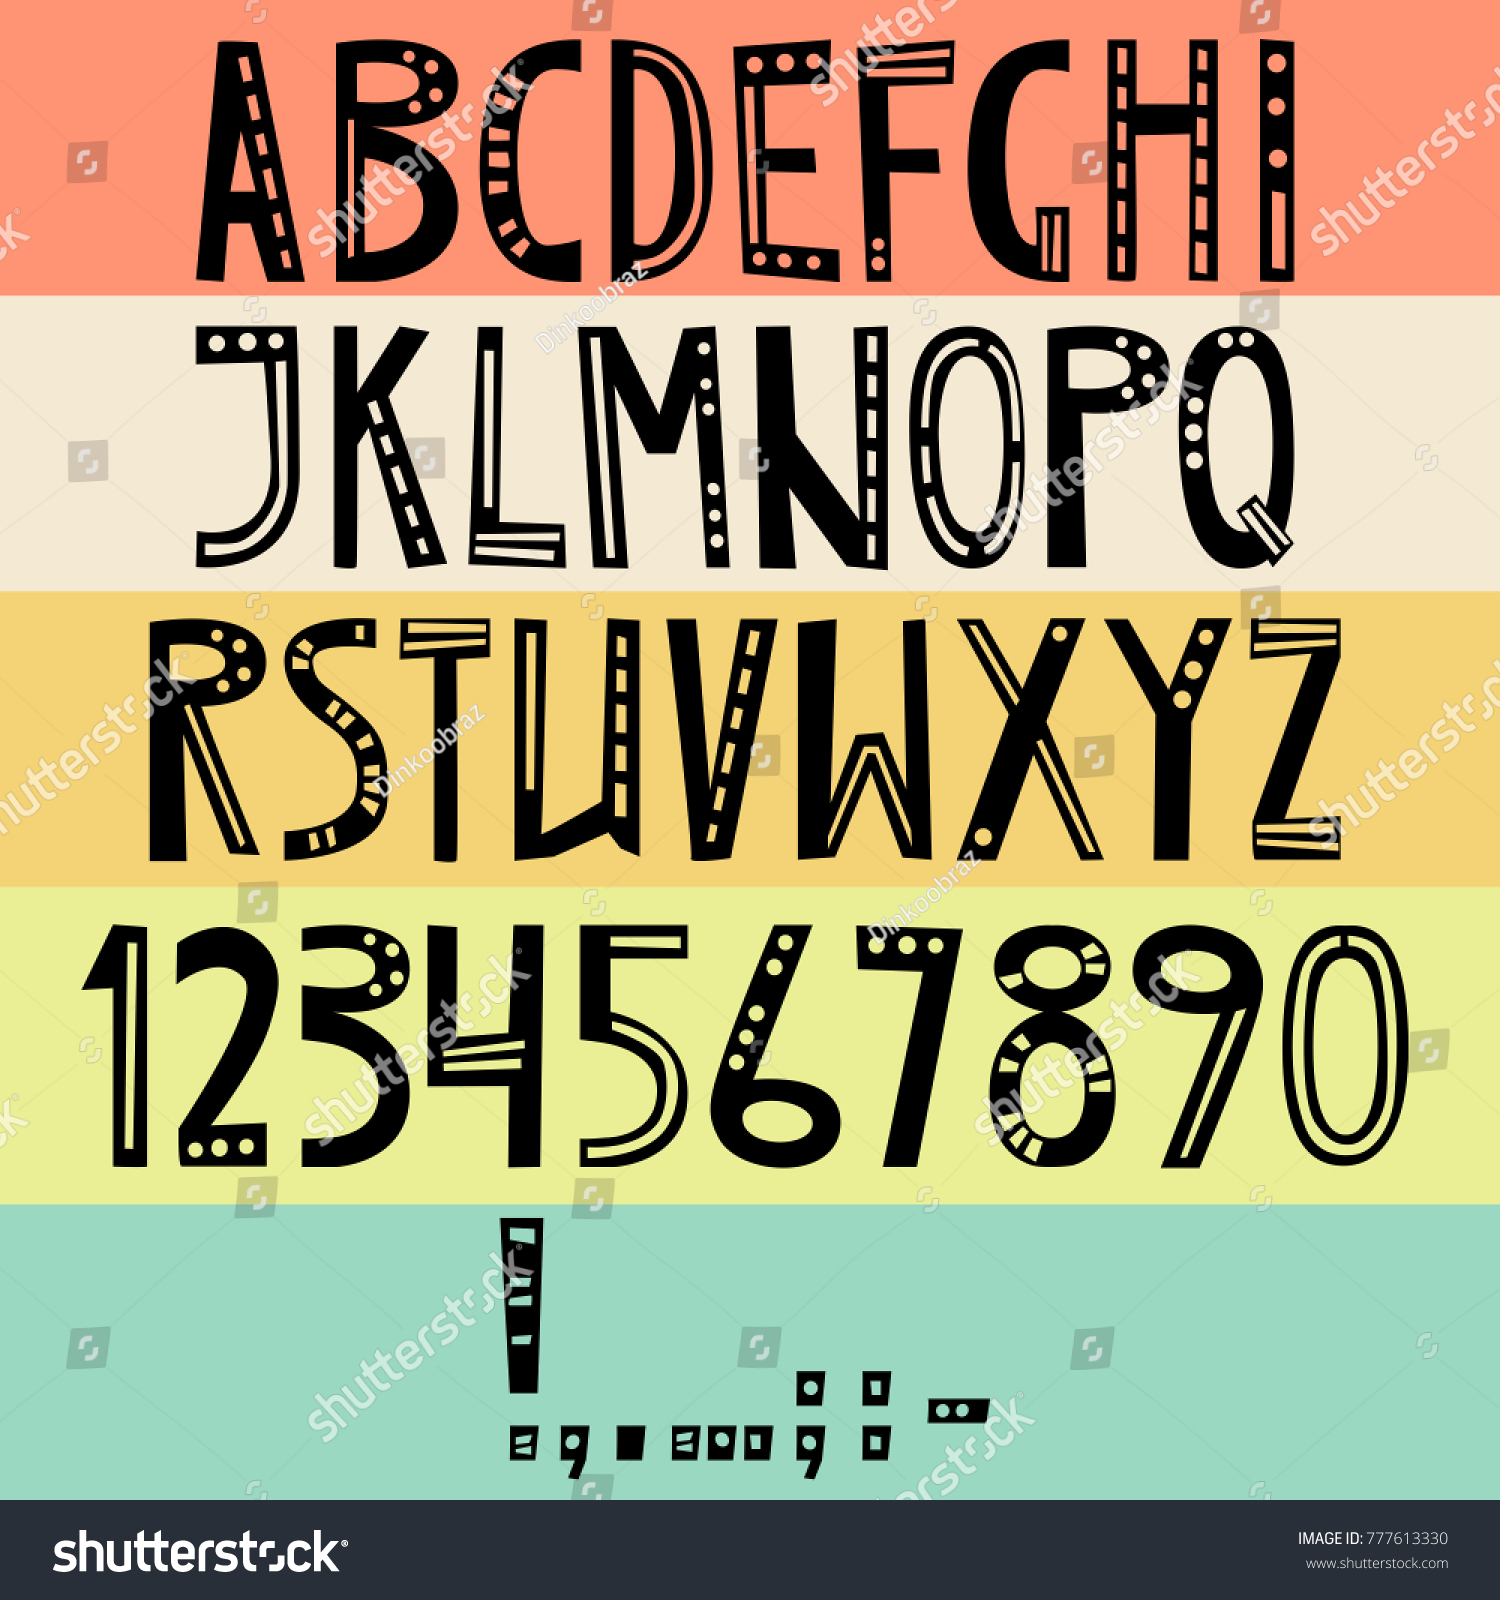 Beautiful Decorative Alphabet Letters For Walls Pictures - Wall Art ...